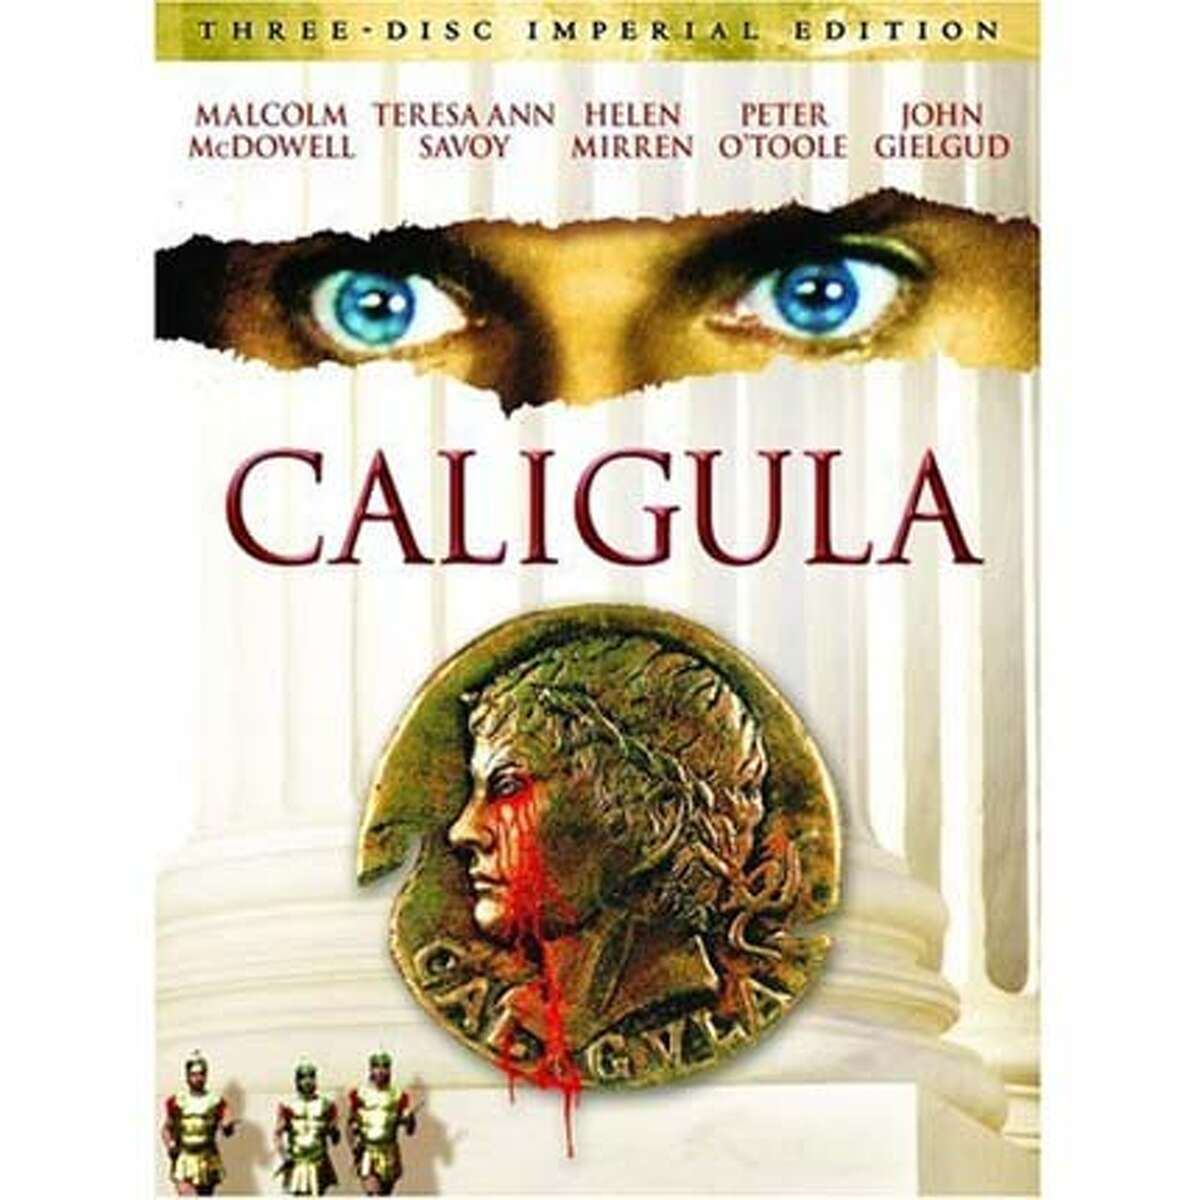 """Caligula Bad enough that he went through life saddled with his baby name, which means """"Little Boots."""" The boy emperor of Rome, who died in A.D. 41, was fond of decapitations over dinner. He also married his sister and had his horse appointed to a senate seat.Current thinking is that encephalitis or a similar ailment either caused or exacerbated his mental illness."""